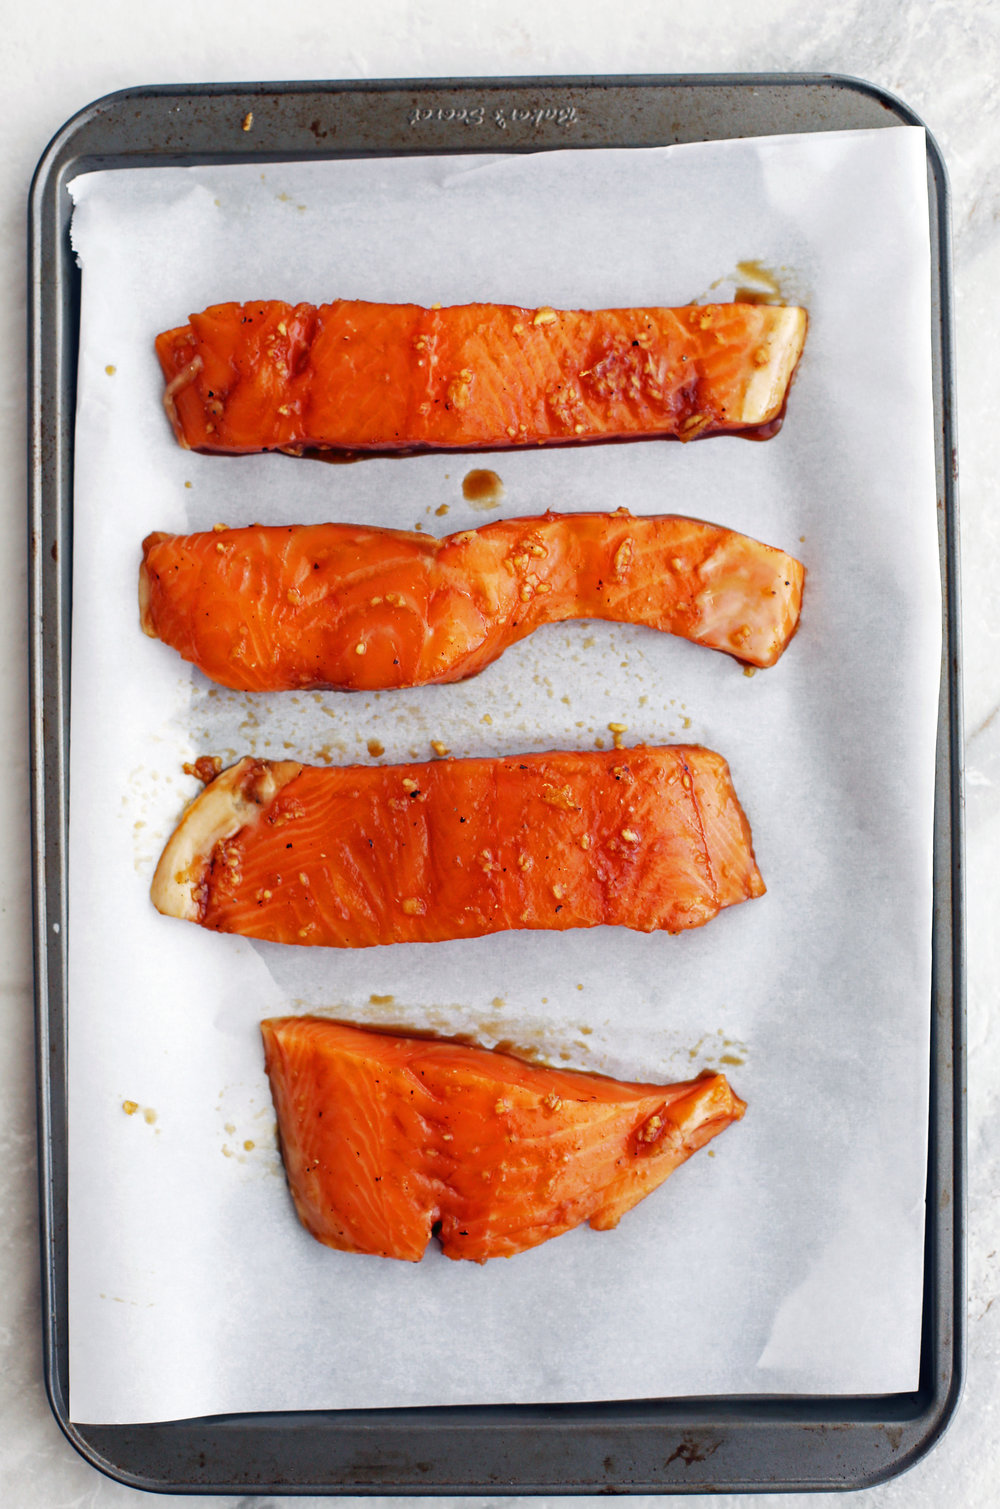 Four maple-soy marinated raw salmon fillets on a baking sheet.